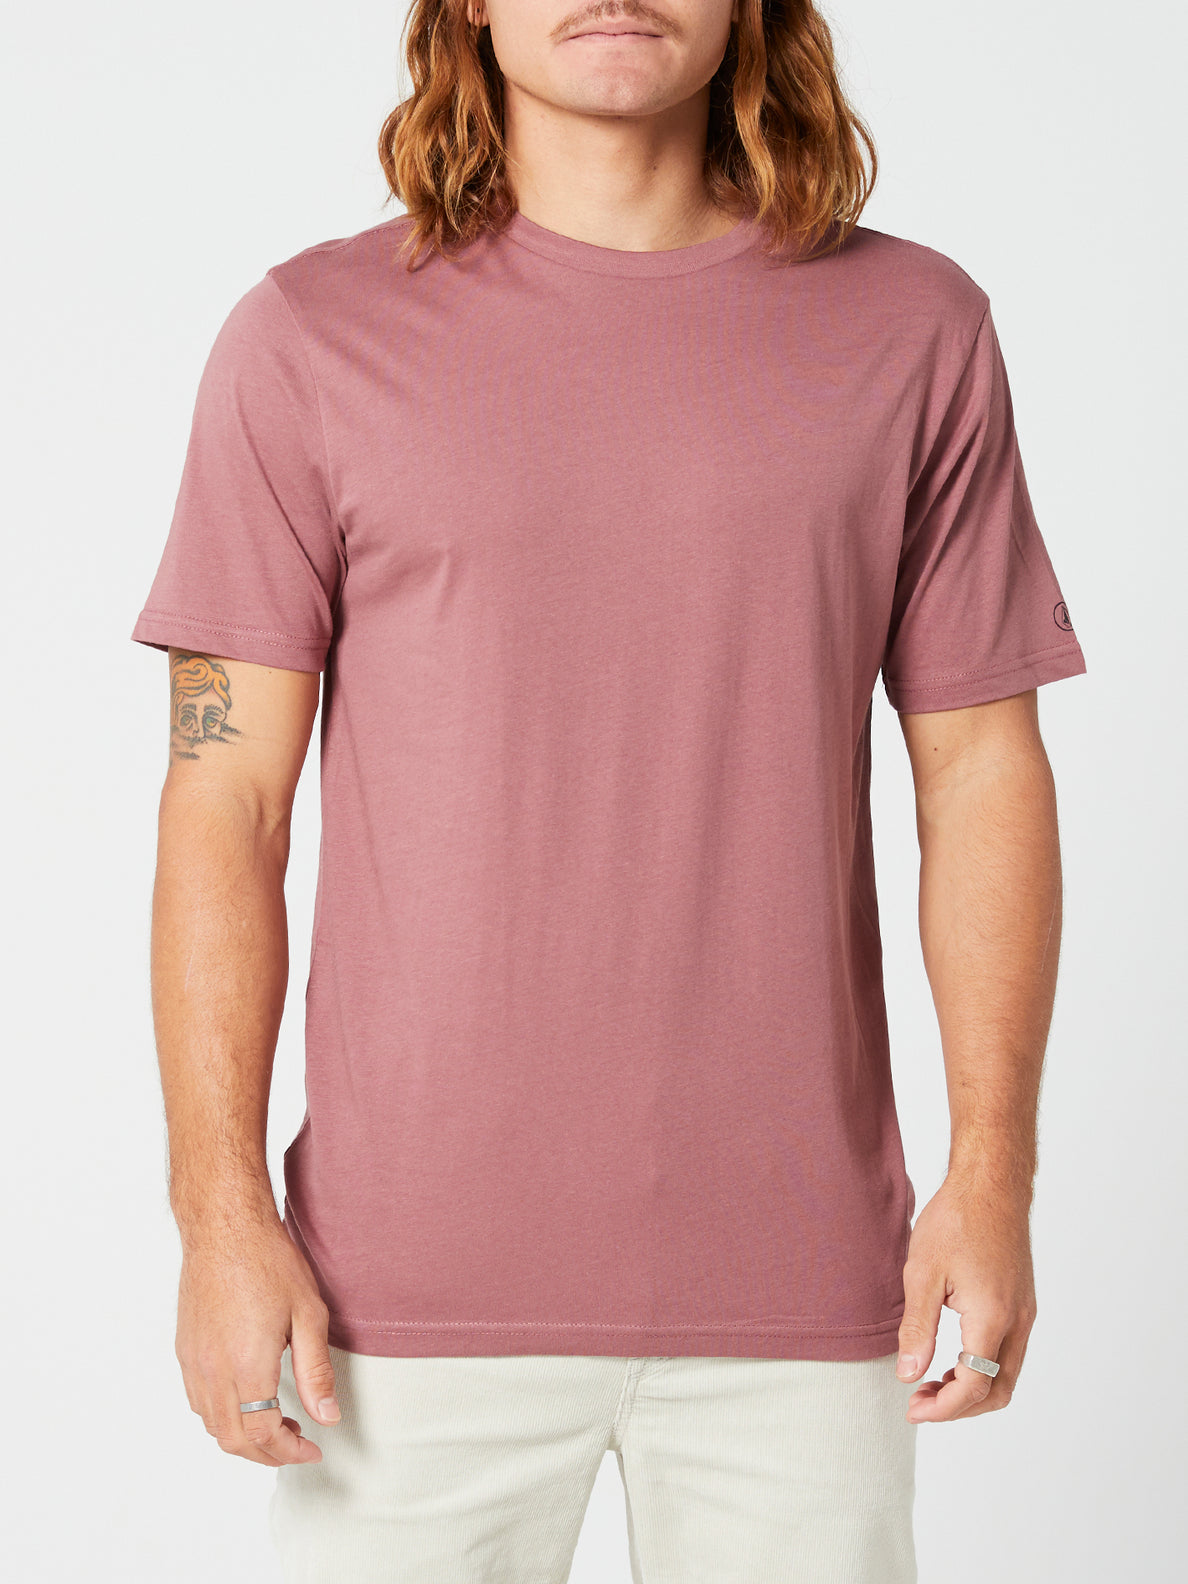 Solid Short Sleeve Tee - Rose Brown (A5032074_RSB) [F]